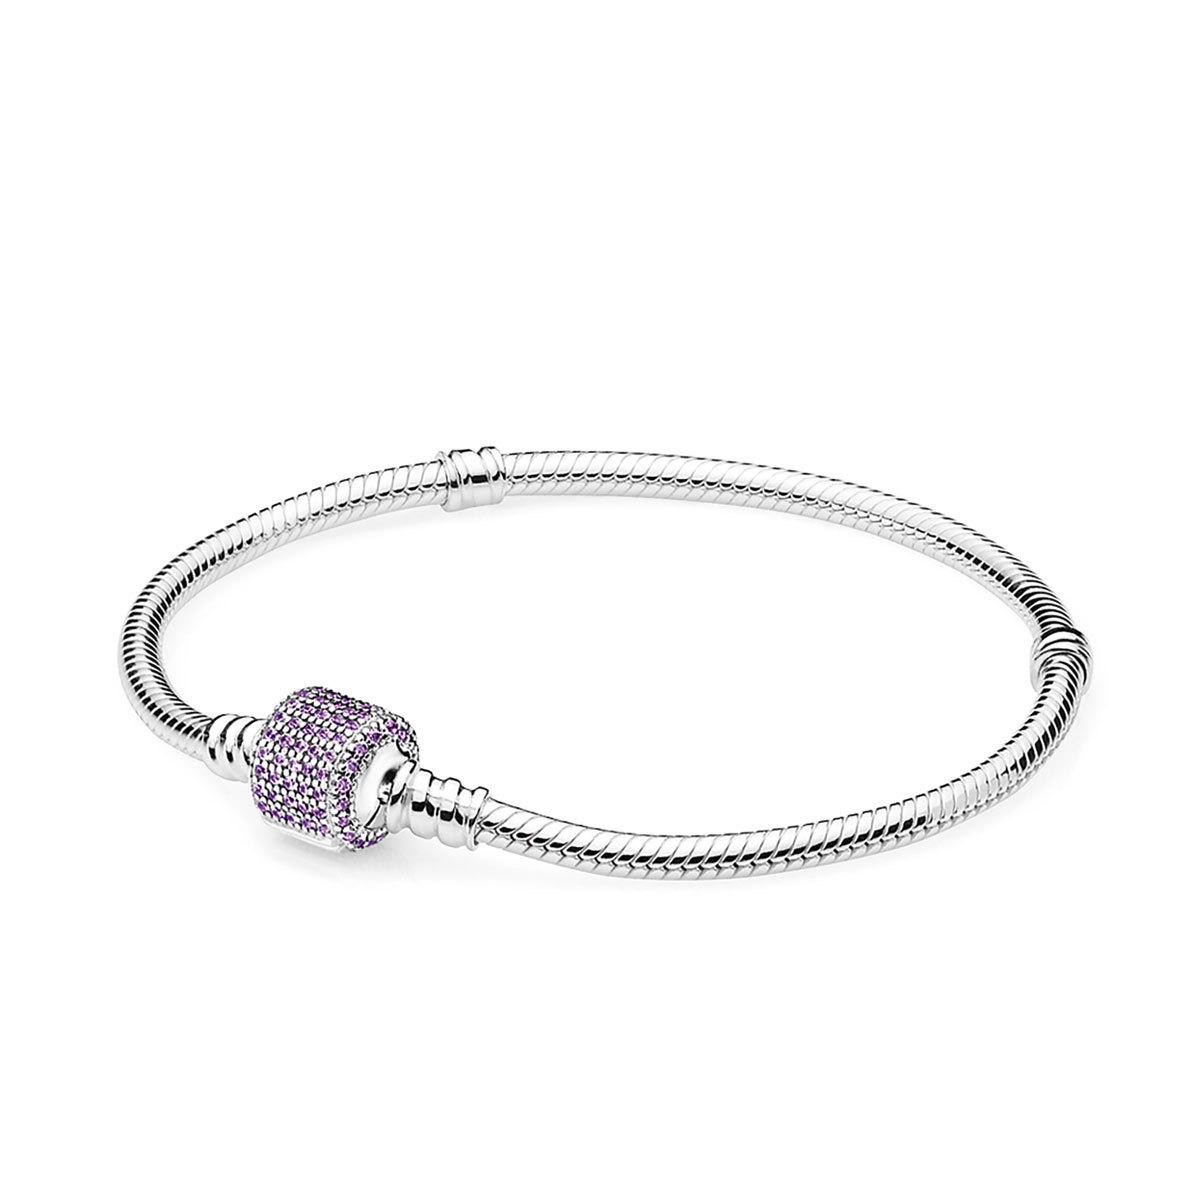 925 Sterling Silver Signature Clasp with Purple Crystal Snake Chain Bracelet